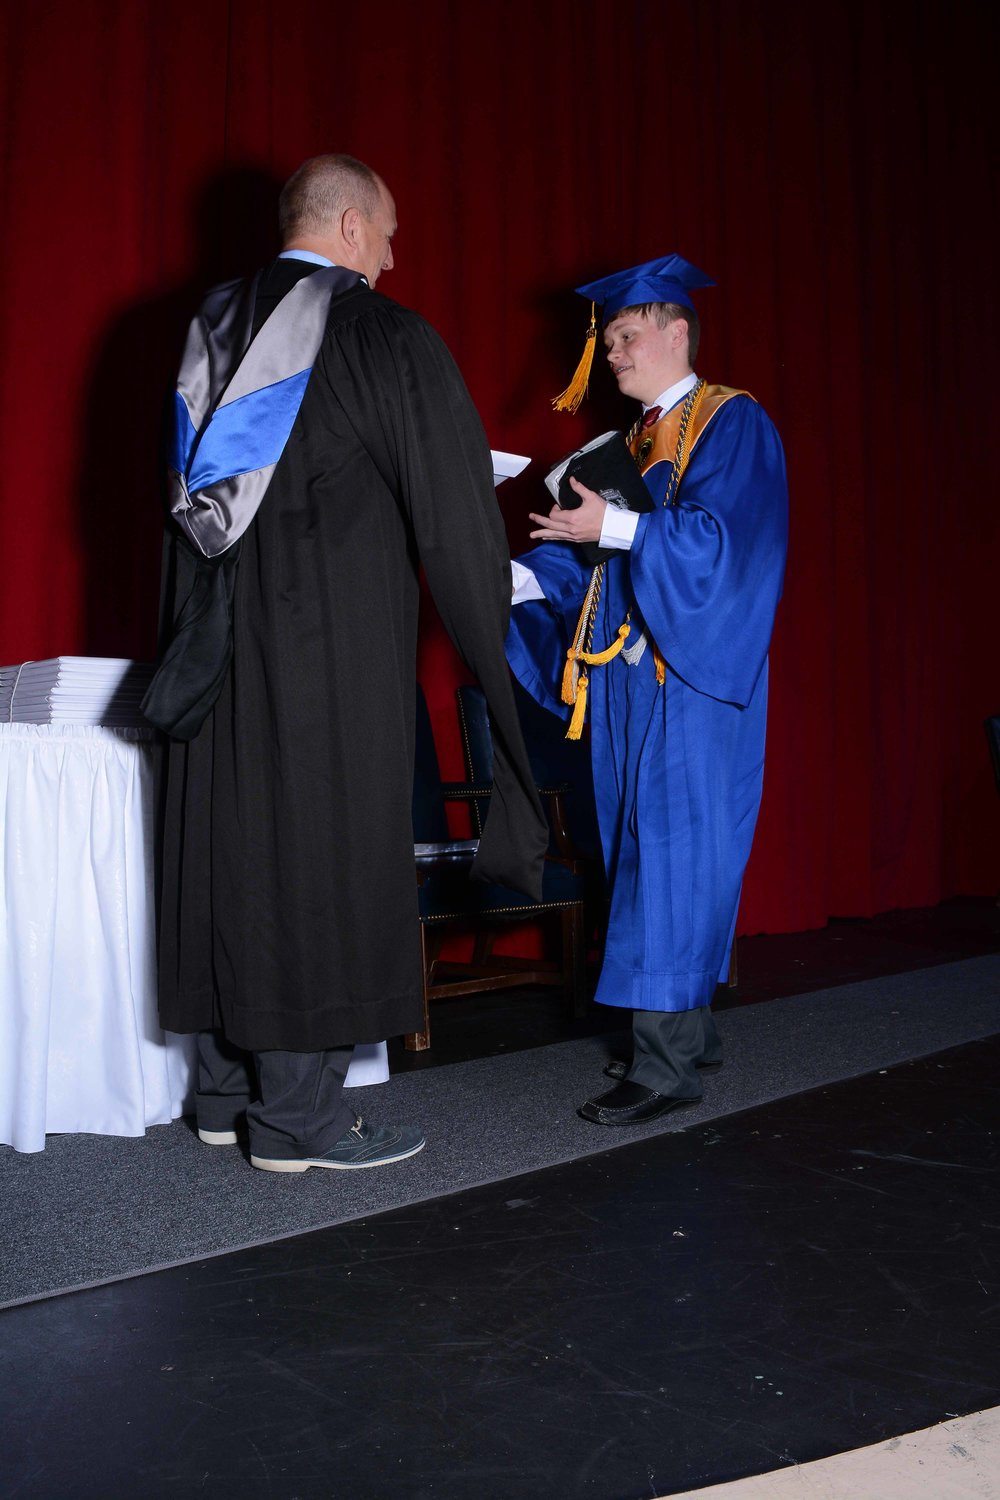 May14 Commencement01.jpg